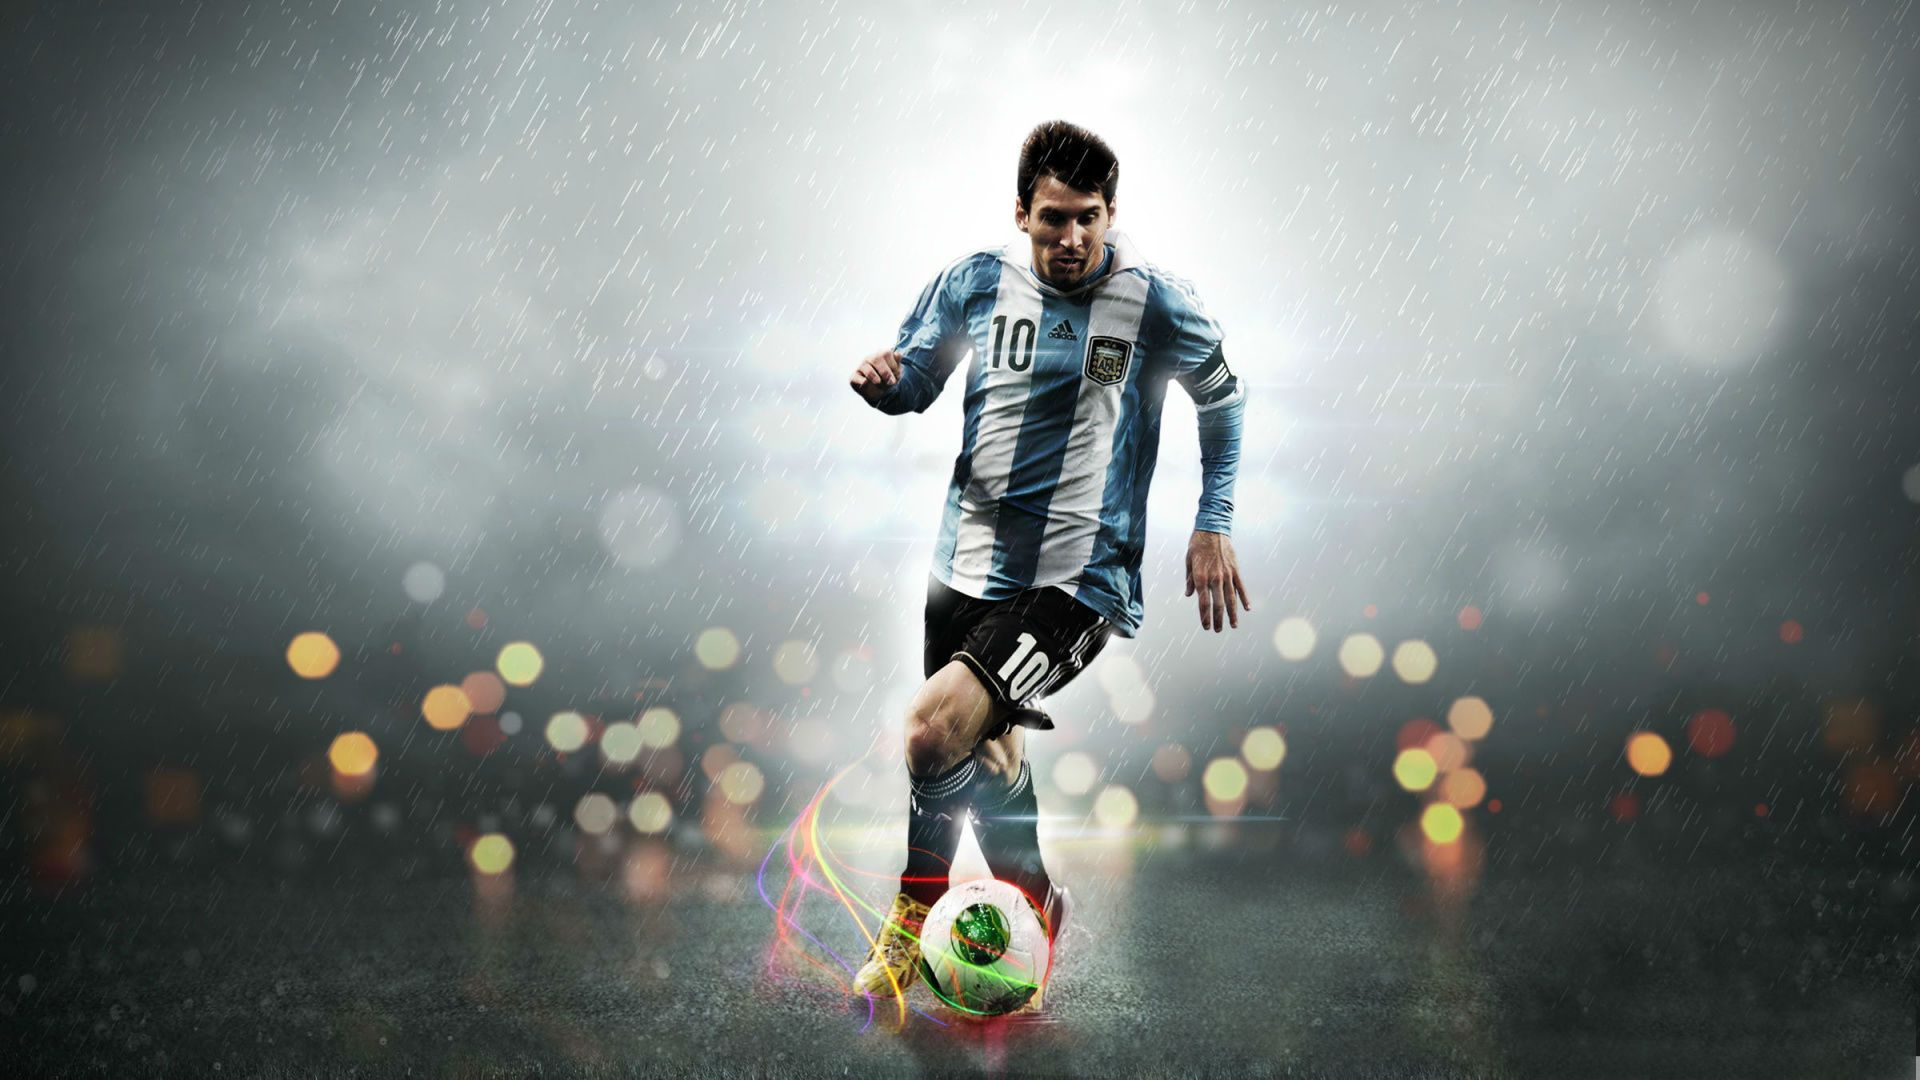 wallpaper of soccer players | epic car wallpapers | pinterest